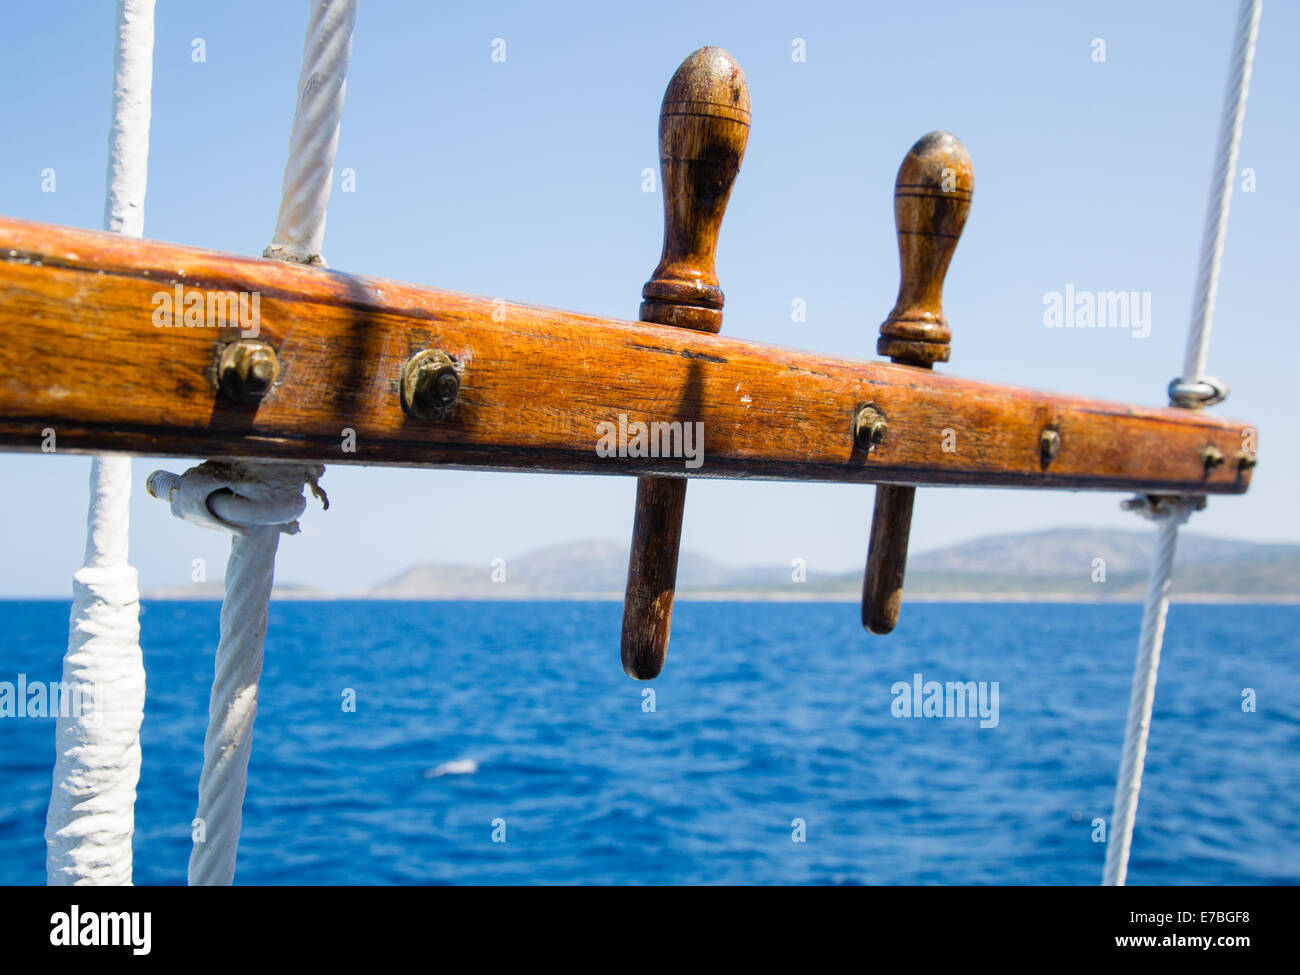 Section of the rigging of an antique sailing vessel plying between islands of the Sporades in the Greek Aegean Sea - Stock Image